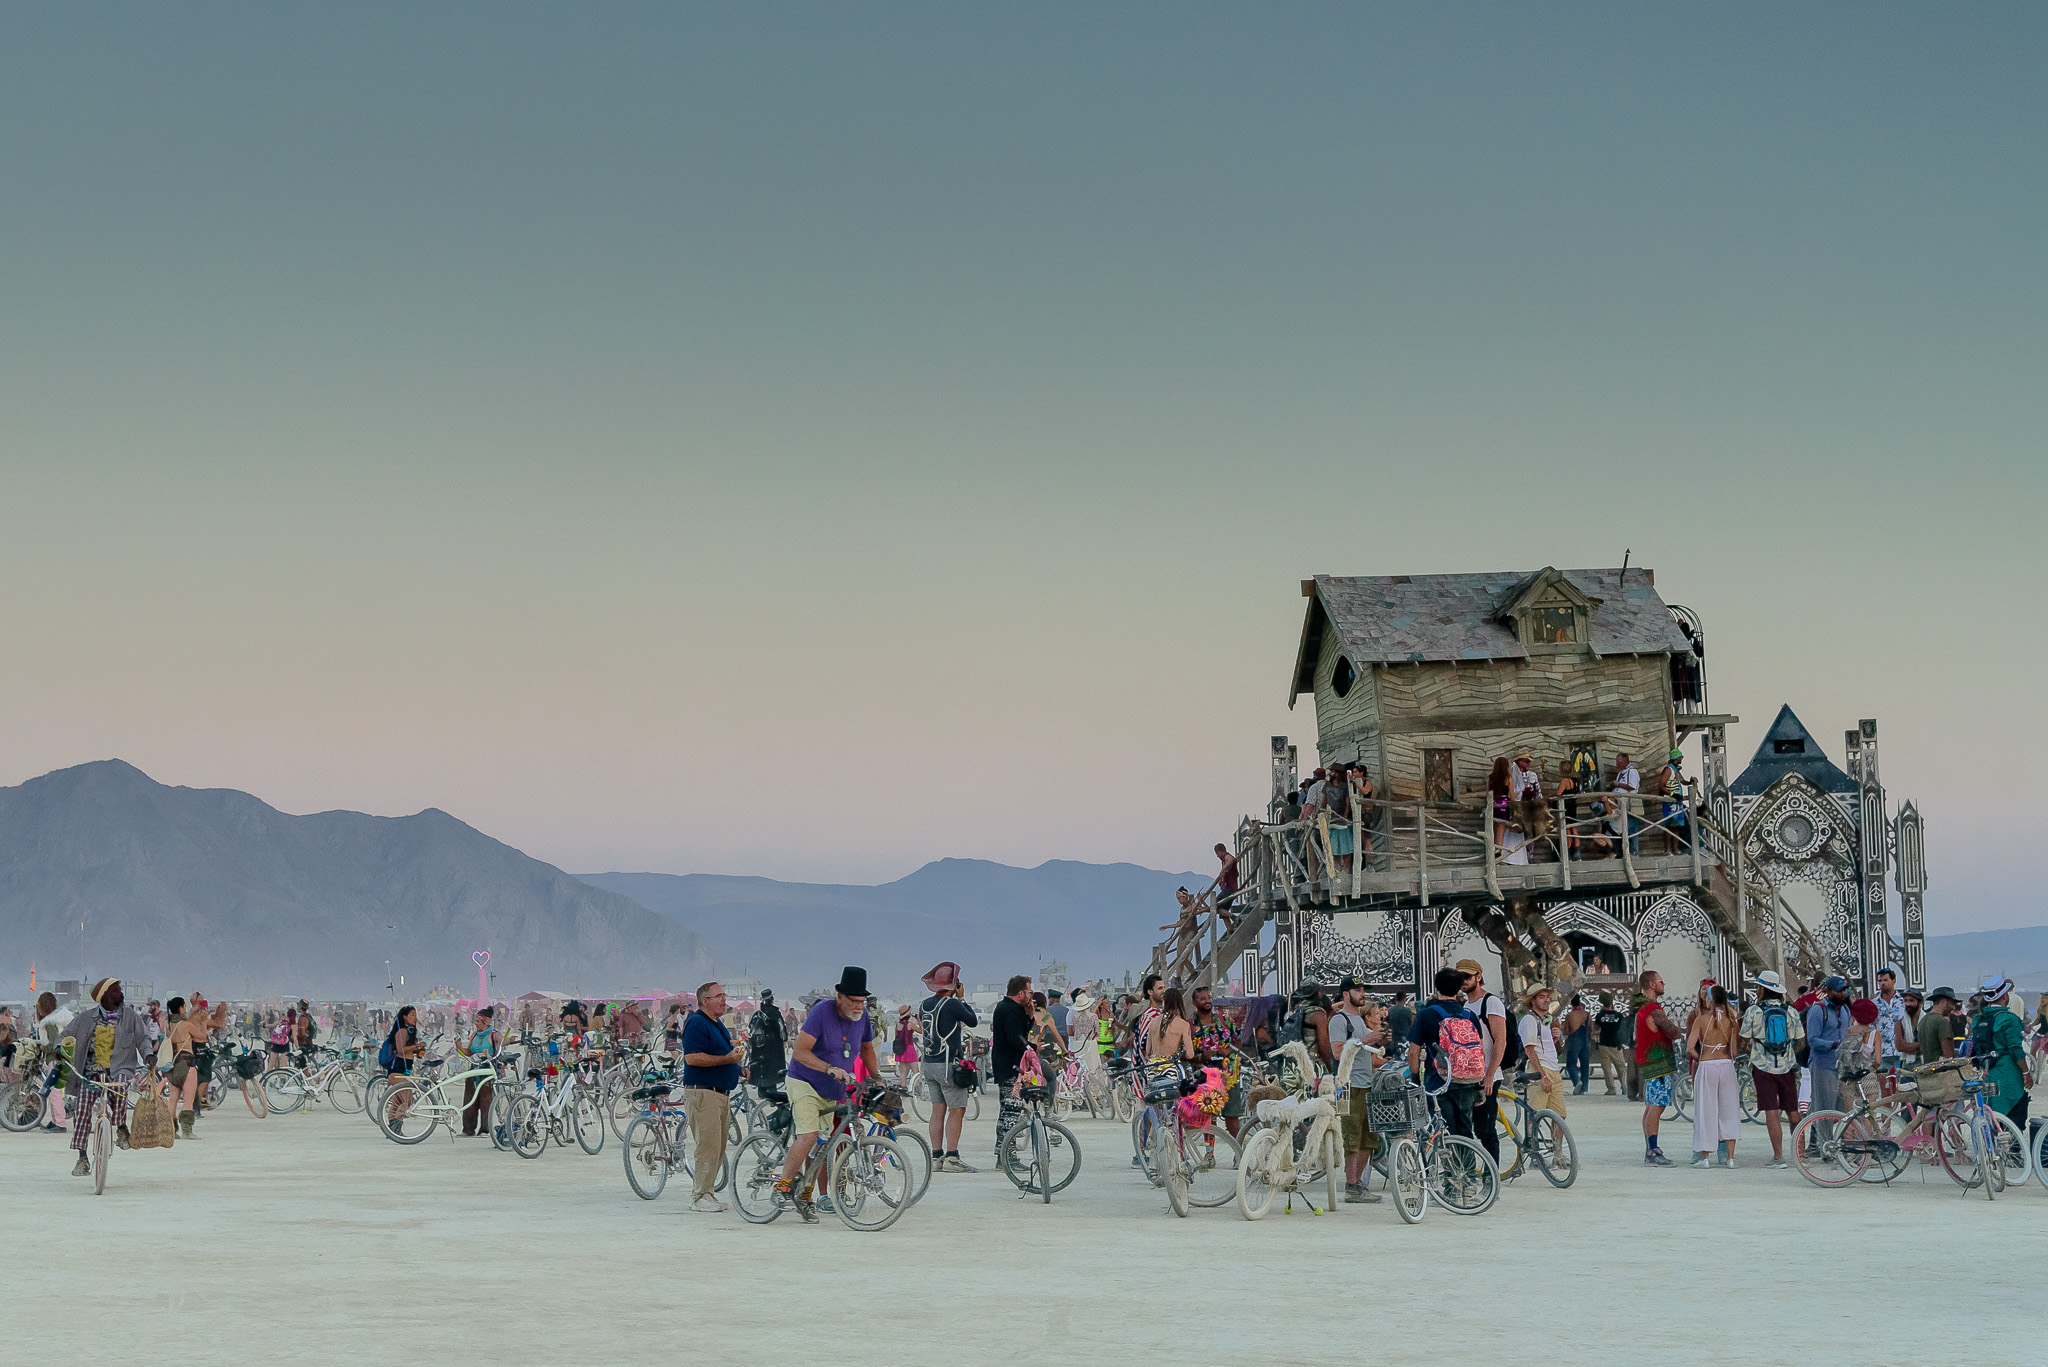 The Russian folktale of 'Baba Yaba' brought to life was arguably our favorite art piece of 2018. Much needed proof that fairytales do still exist on the playa. Black Rock City, NV.